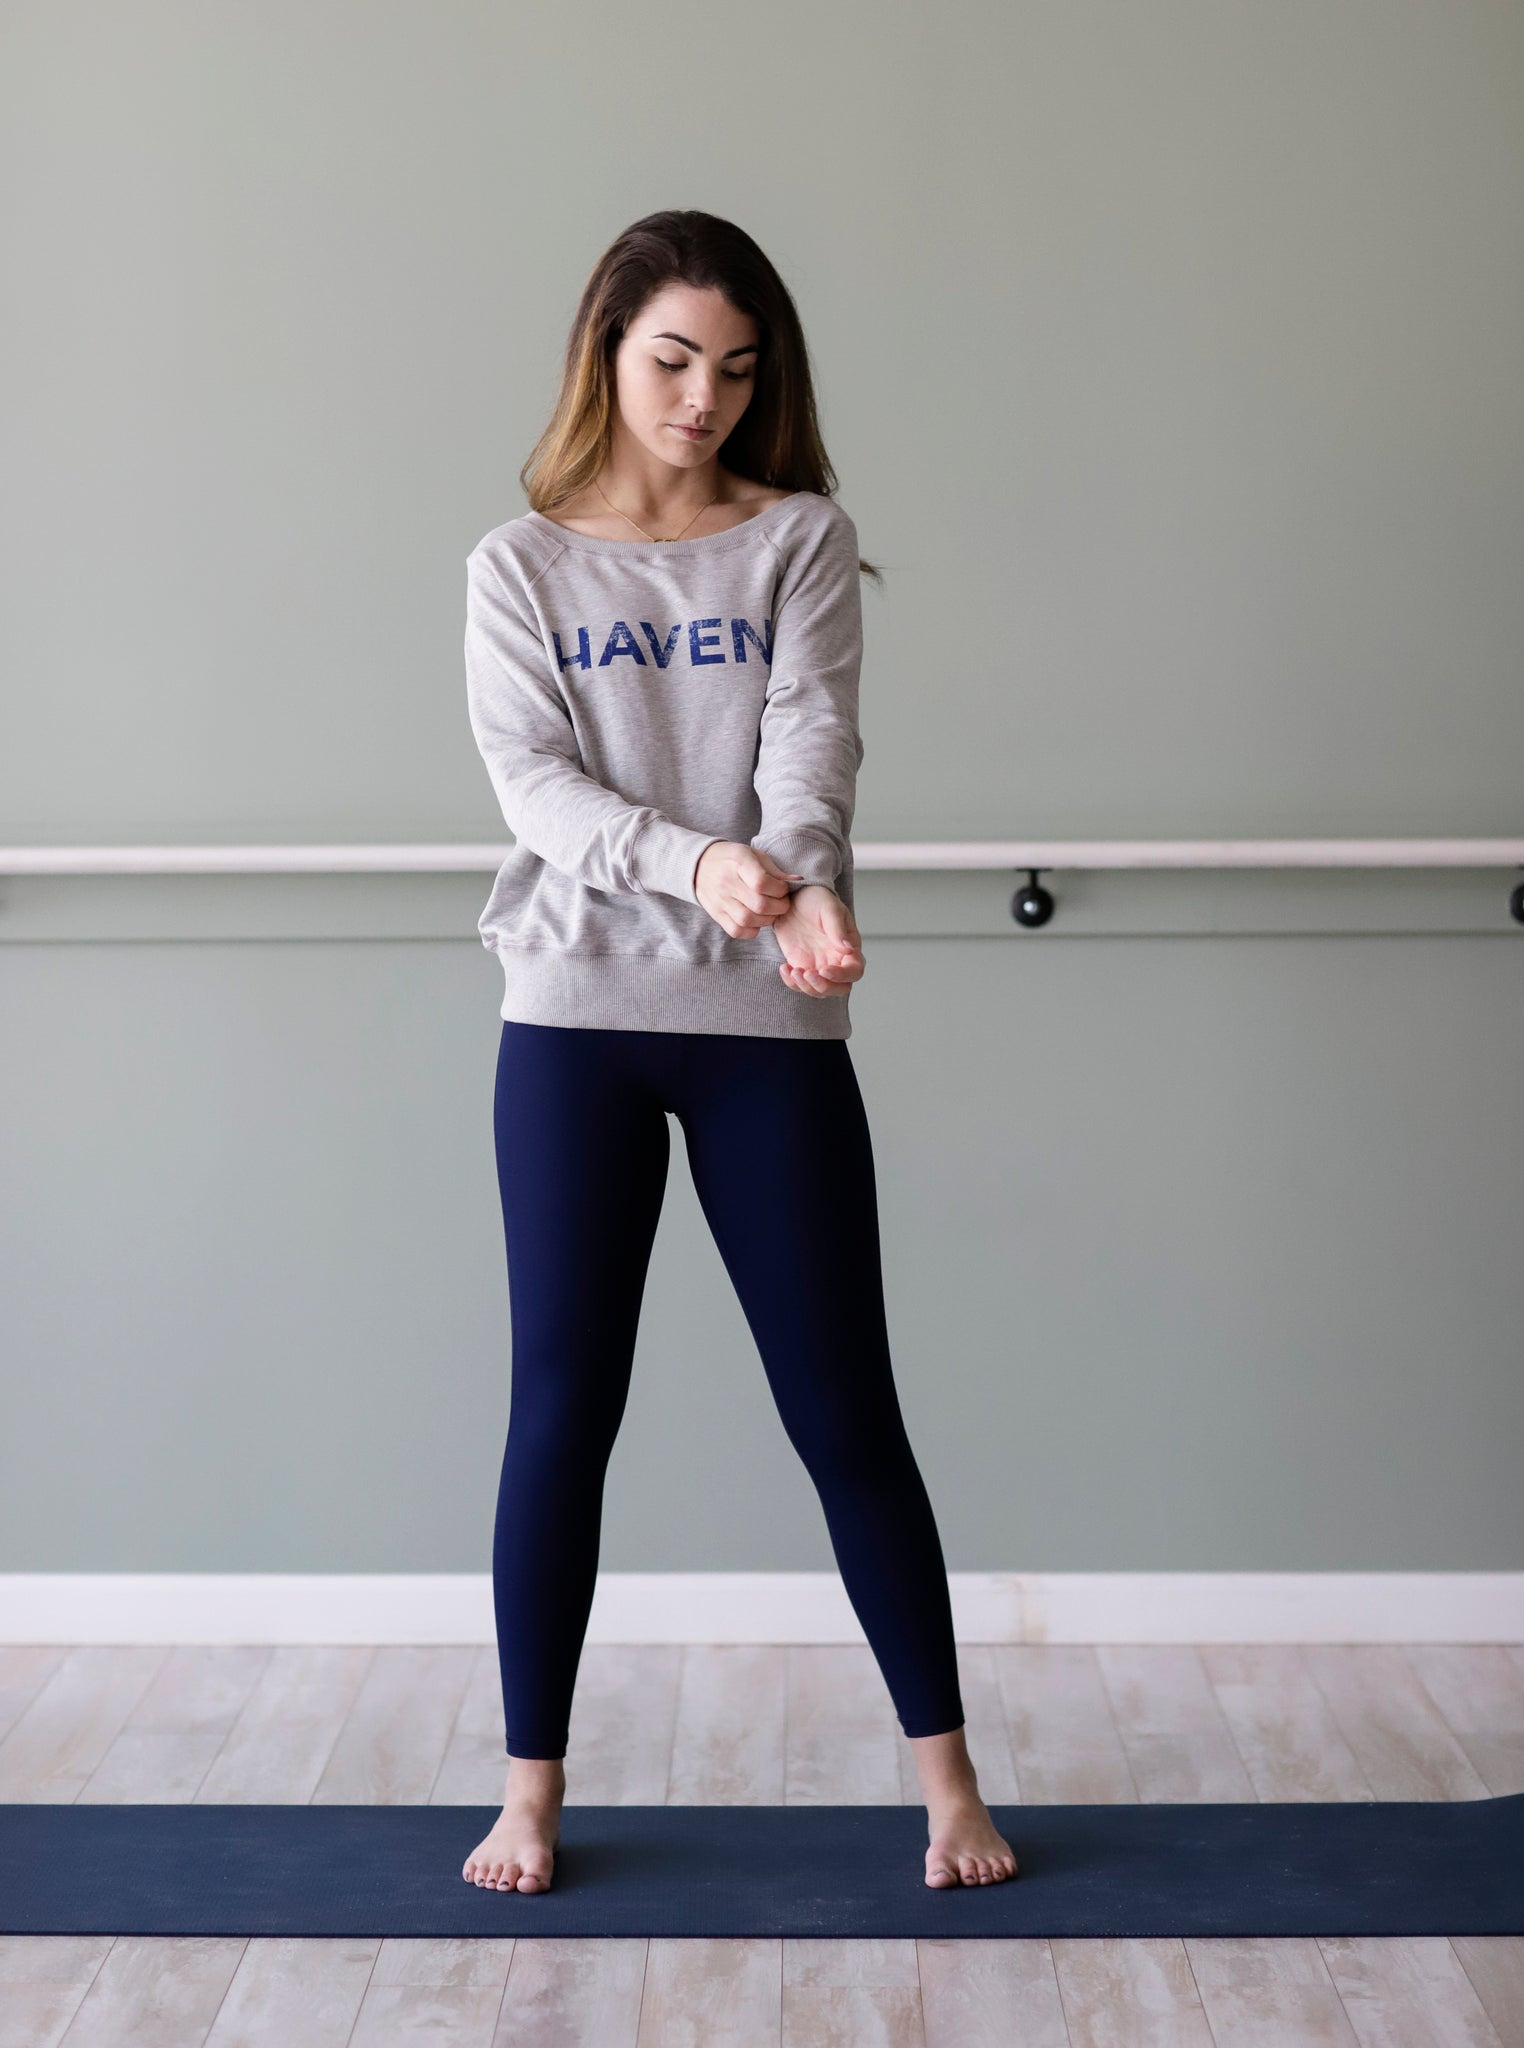 HAVEN Navy Distressed  Heather Grey Boyfriend Sweatshirt - Haven Collective